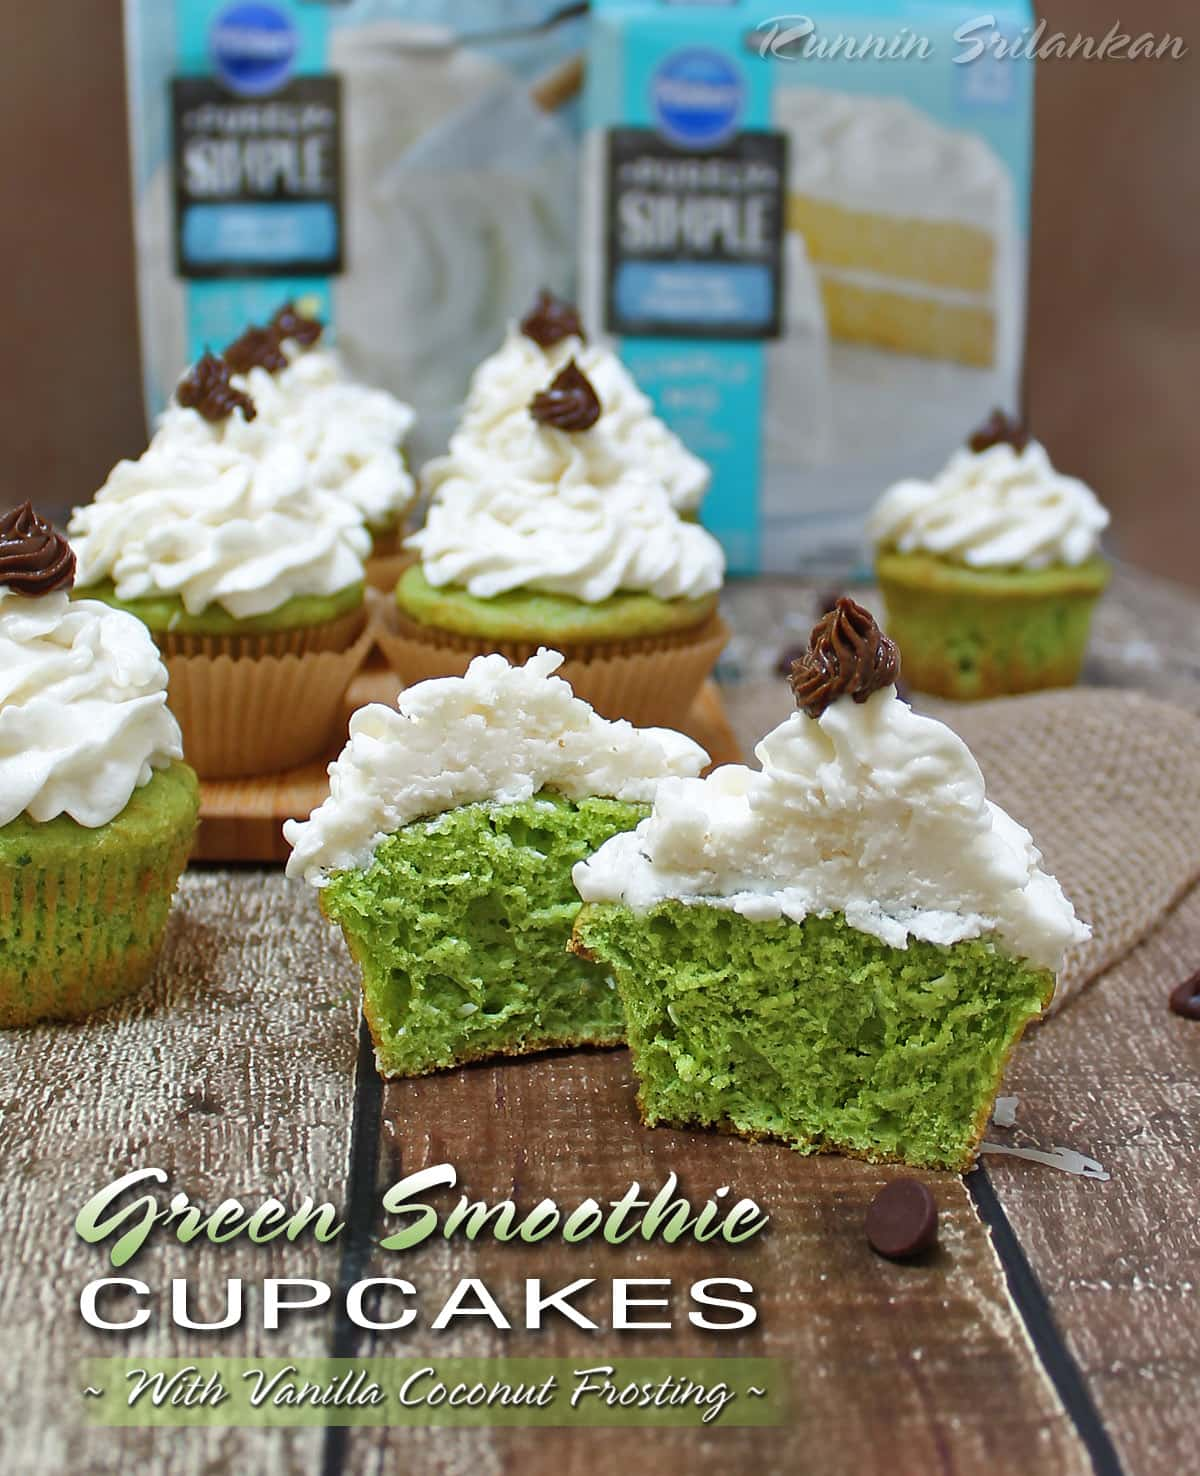 Green Smoothie Cupcakes Vanilla Coconut Frosting #PurelySimple